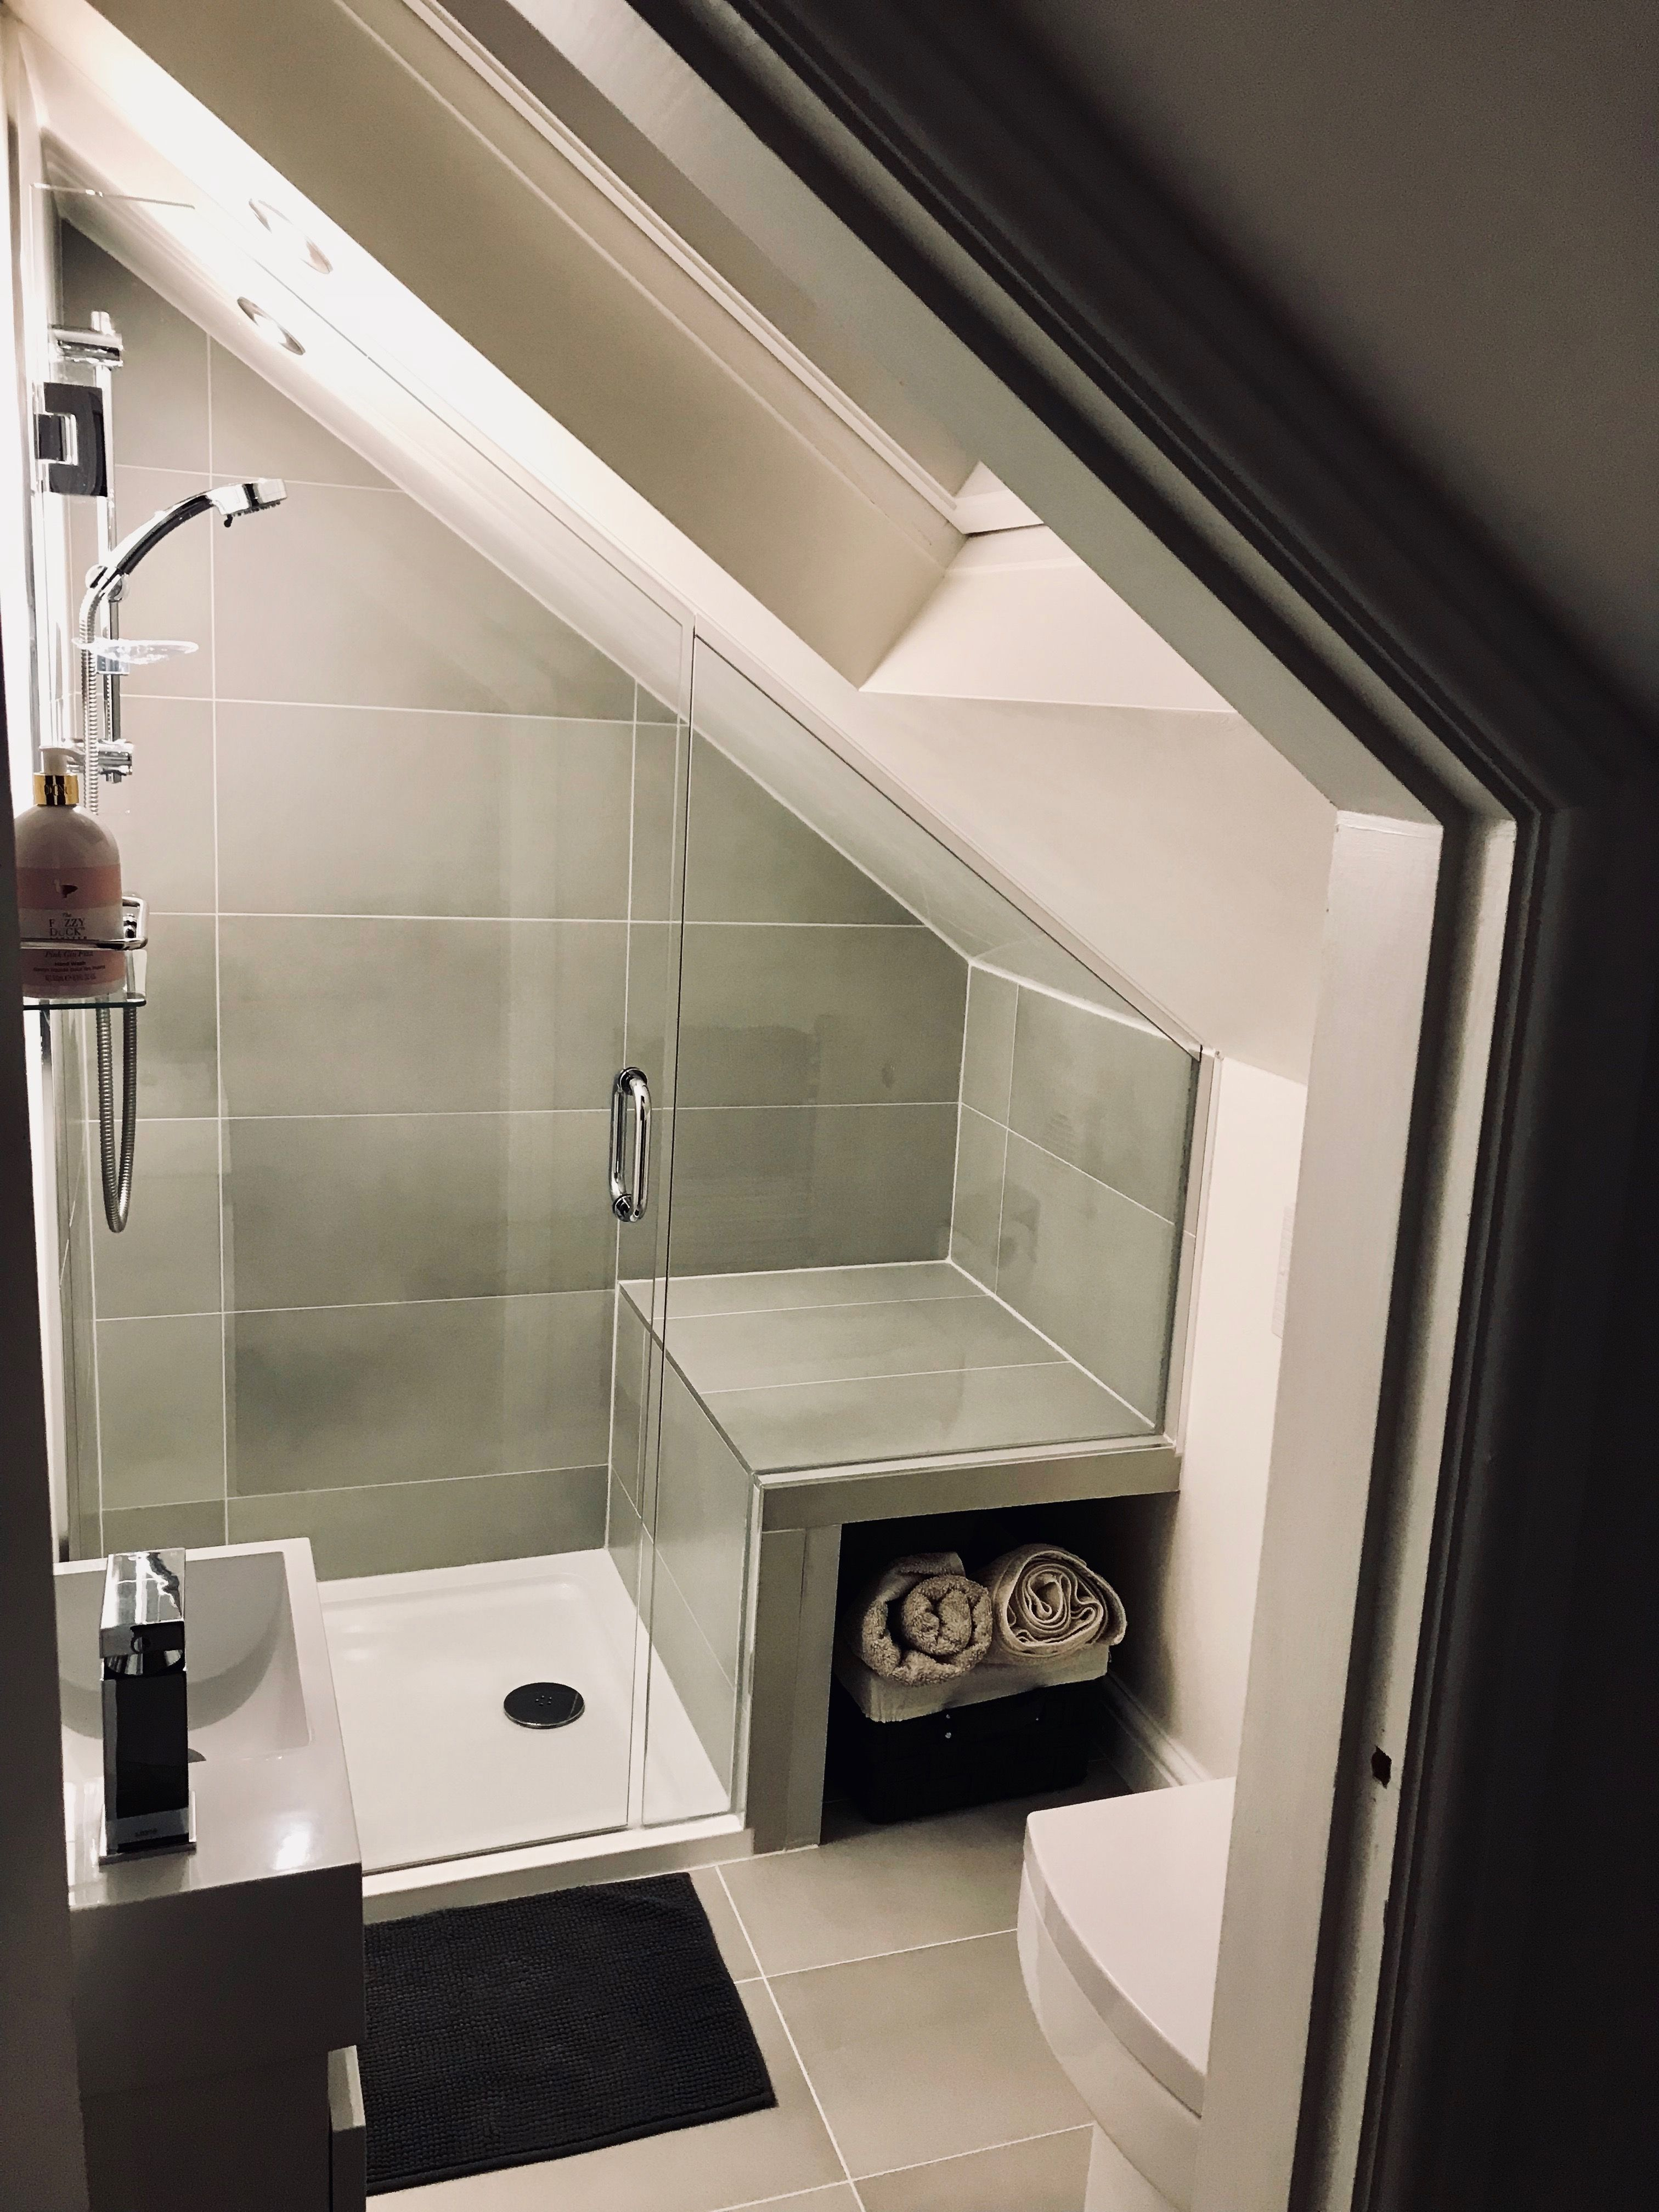 Small loft bathroom conversion #loftconversions